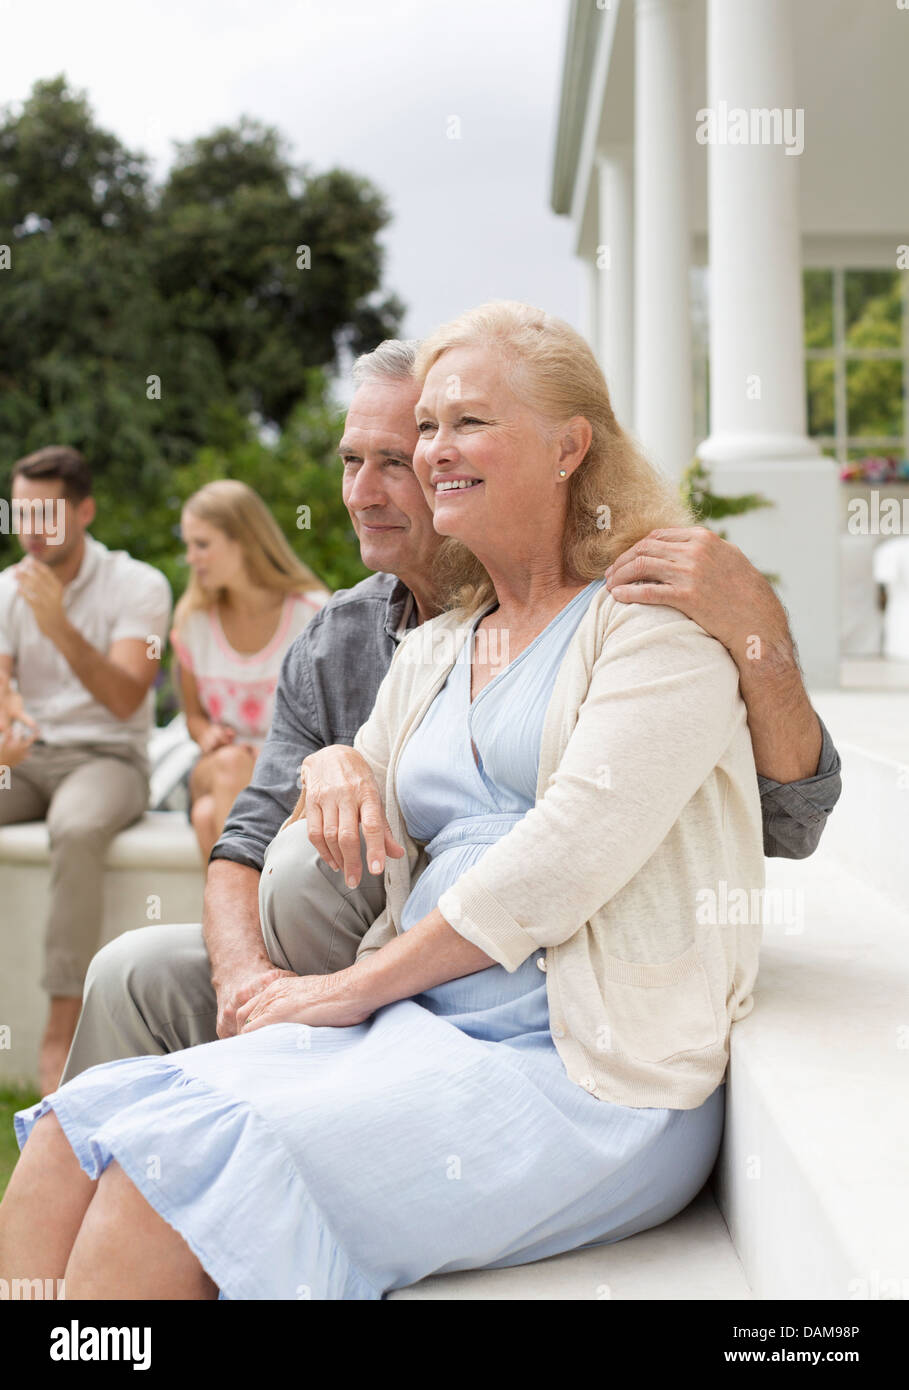 Older couple sitting on porch - Stock Image